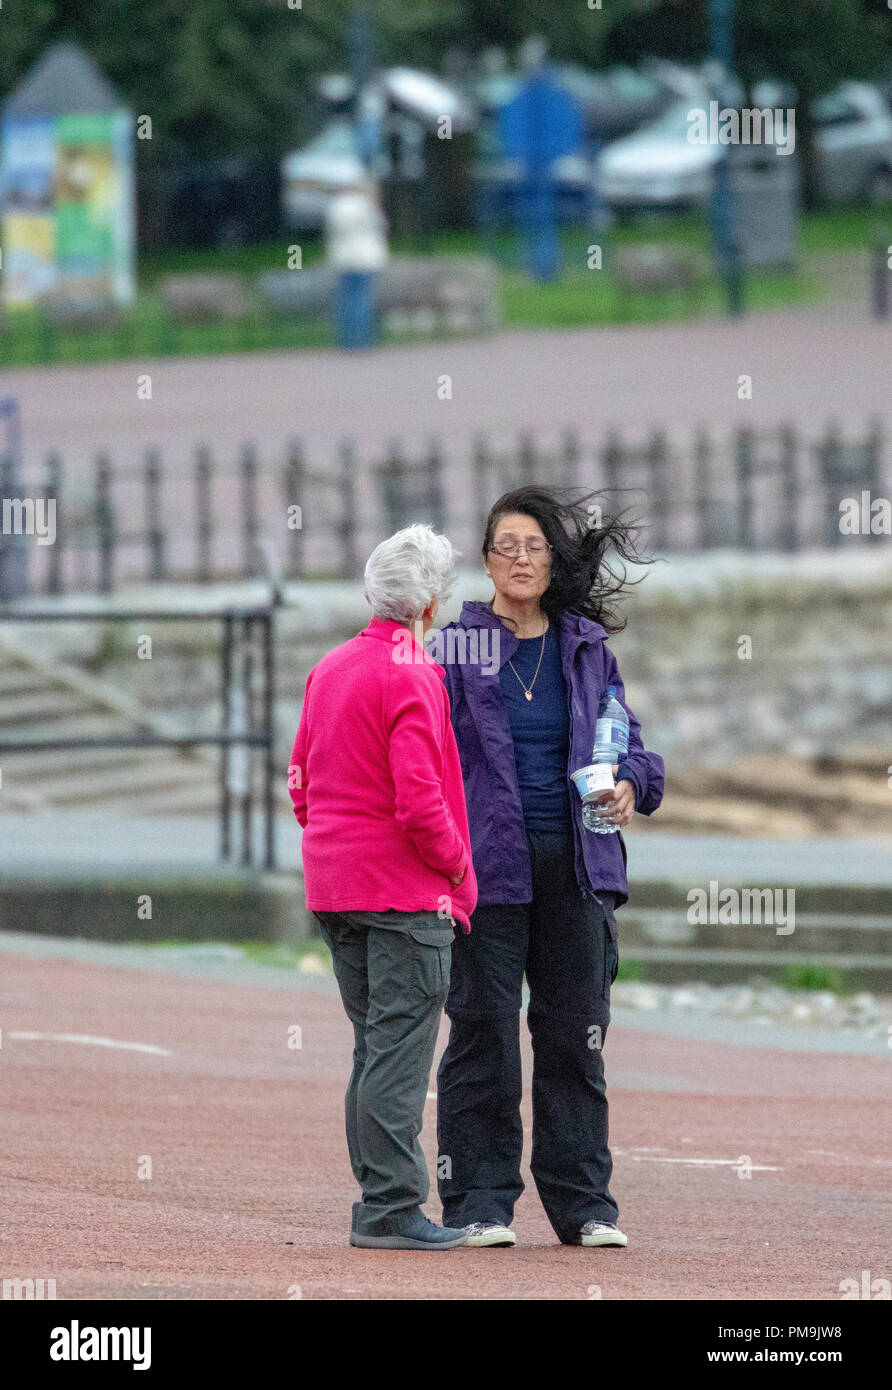 North Wales,  September 2018. UK Weather: A Met Office Yellow Warning is in place for windy weather and coastal gales for North Wales as ex-Hurricane Helene makes landfall across the region.  Friends chatting in the windy weather on the coastal promenade of Llandudno, North Wales - Stock Image